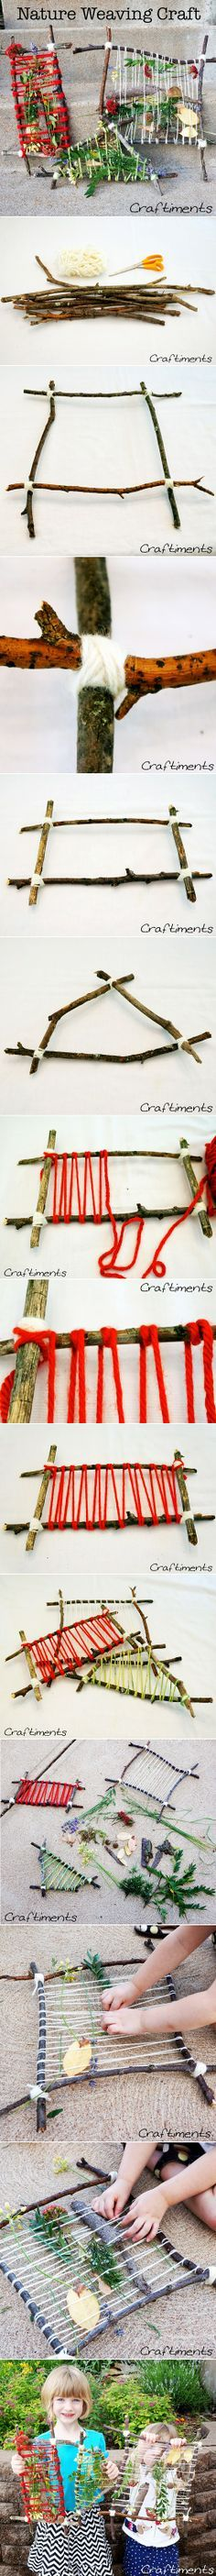 How to make DIY natural weaving loom, step by step tutorial / instructions